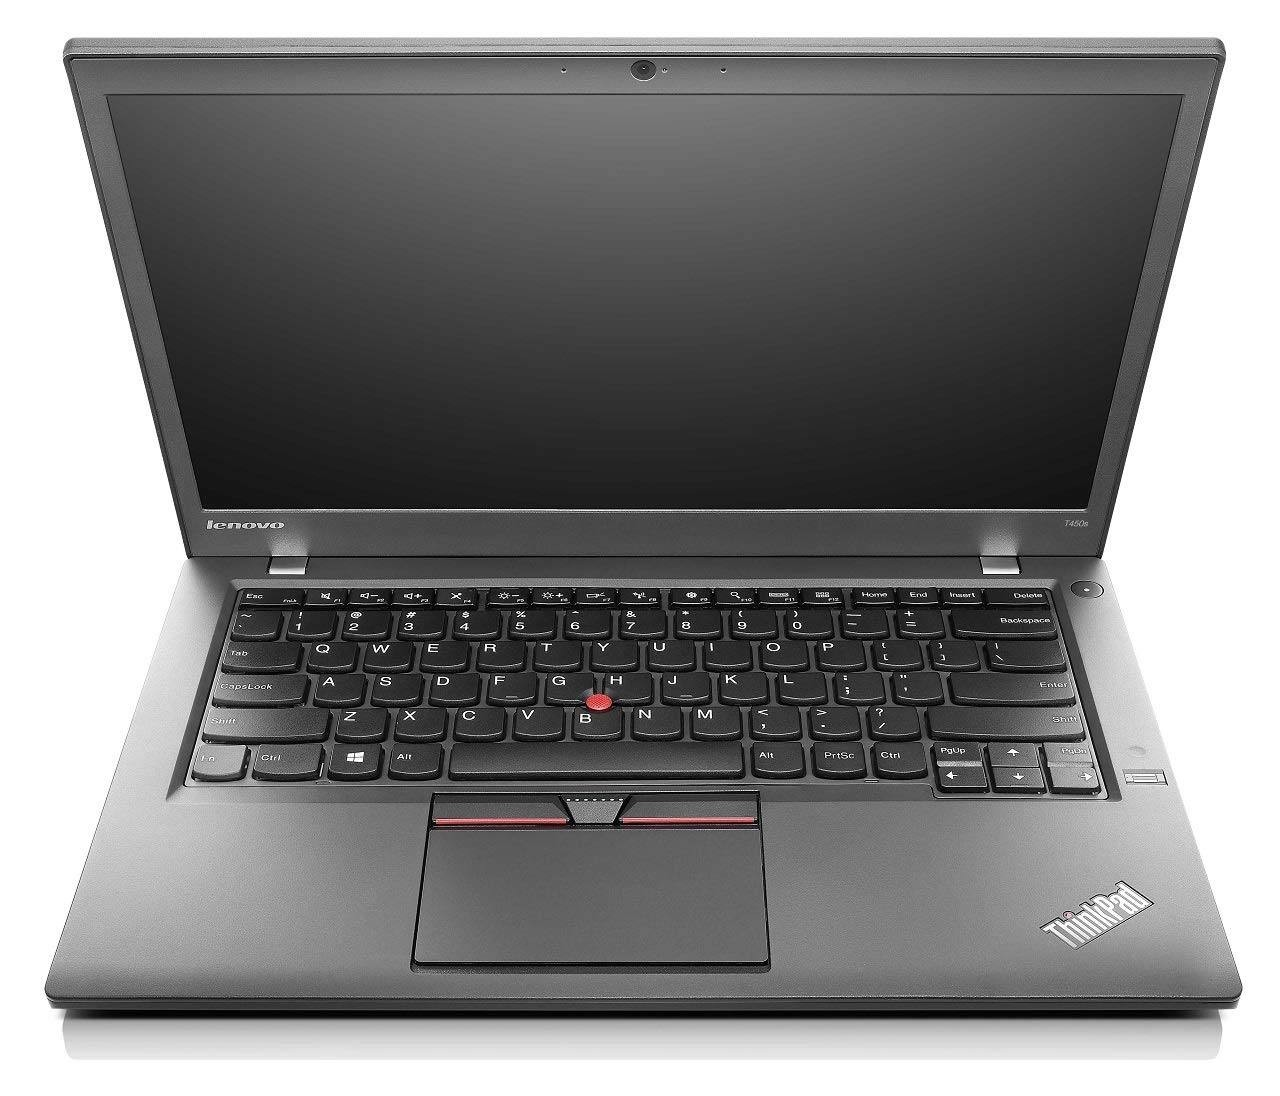 Notebook Lenovo T450 Image